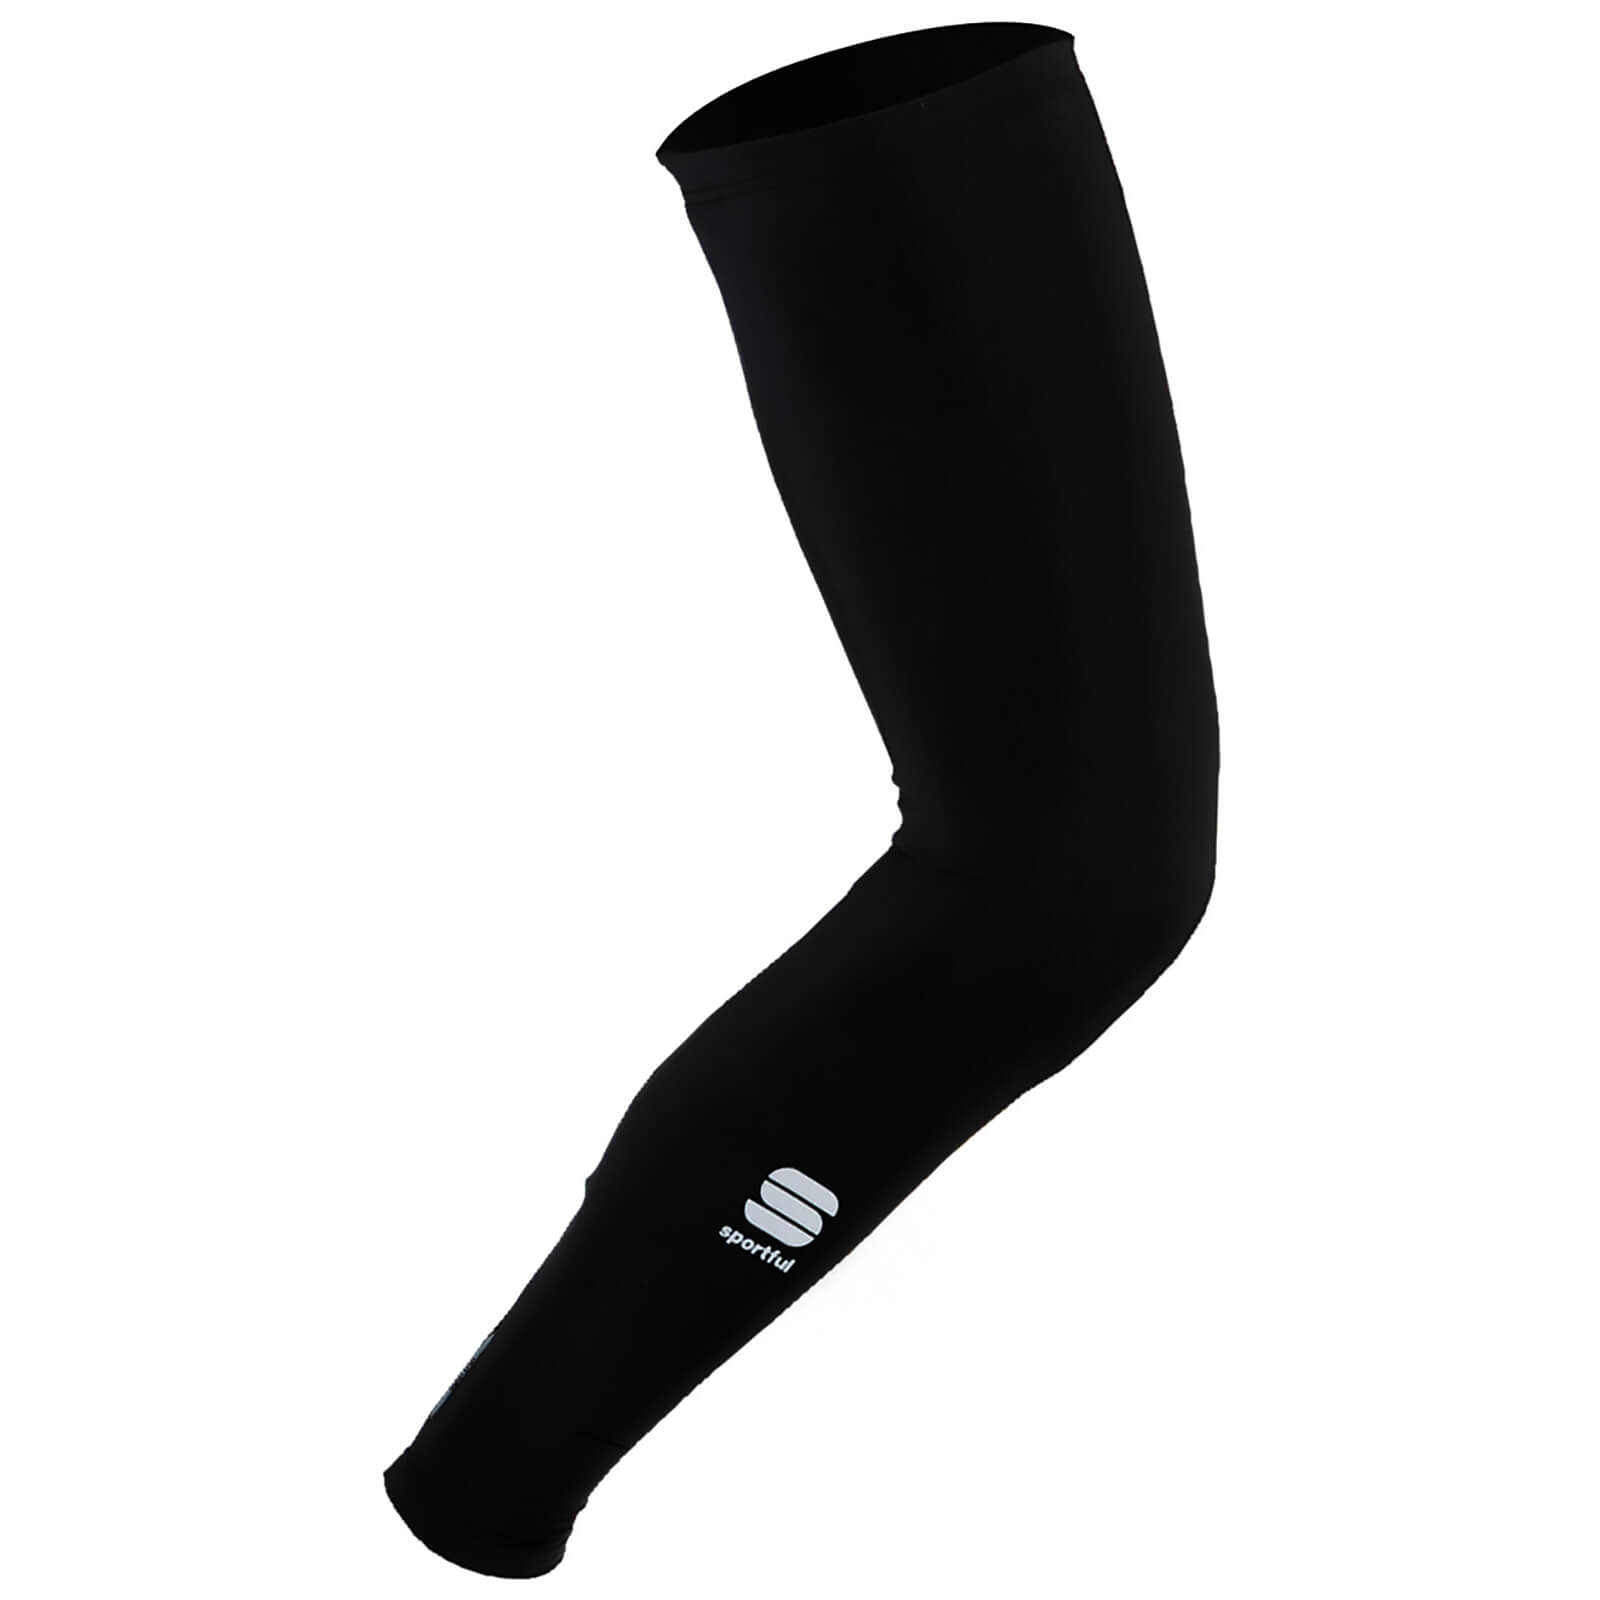 Sportful Thermodrytex + Leg Warmers - Black